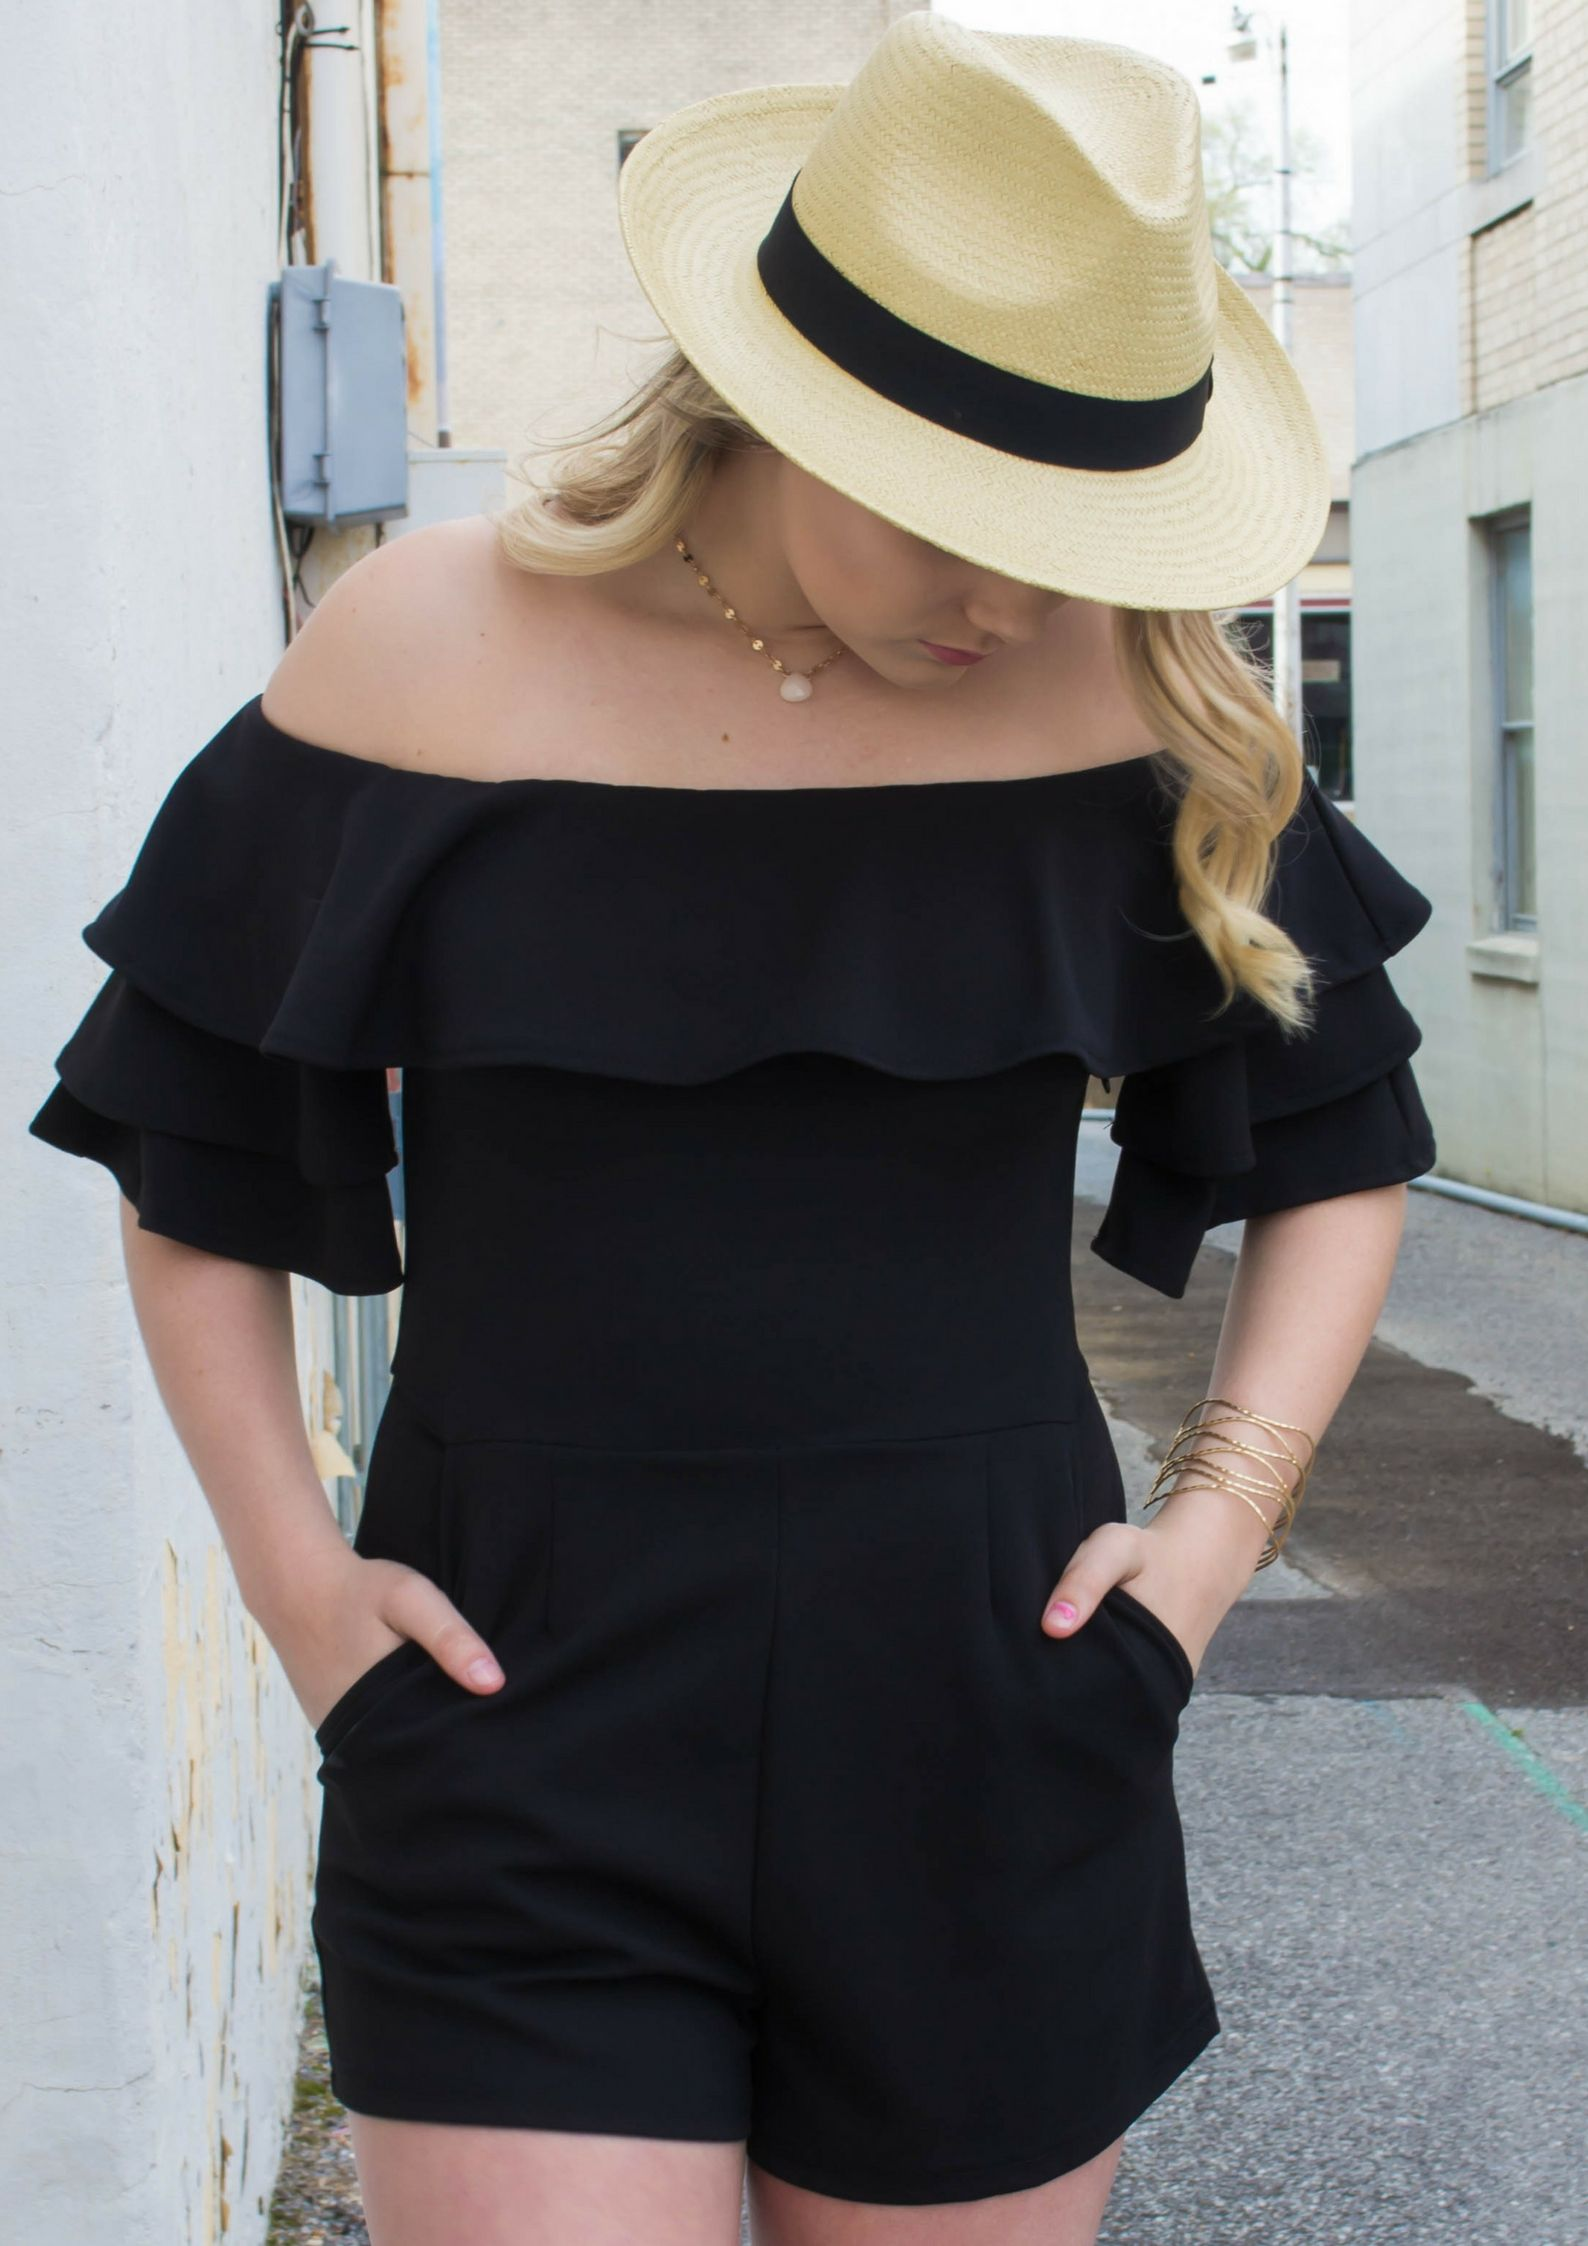 6b2fa313ab35 2 Rompers For Graduation  fashion  style  romper  outfit  black